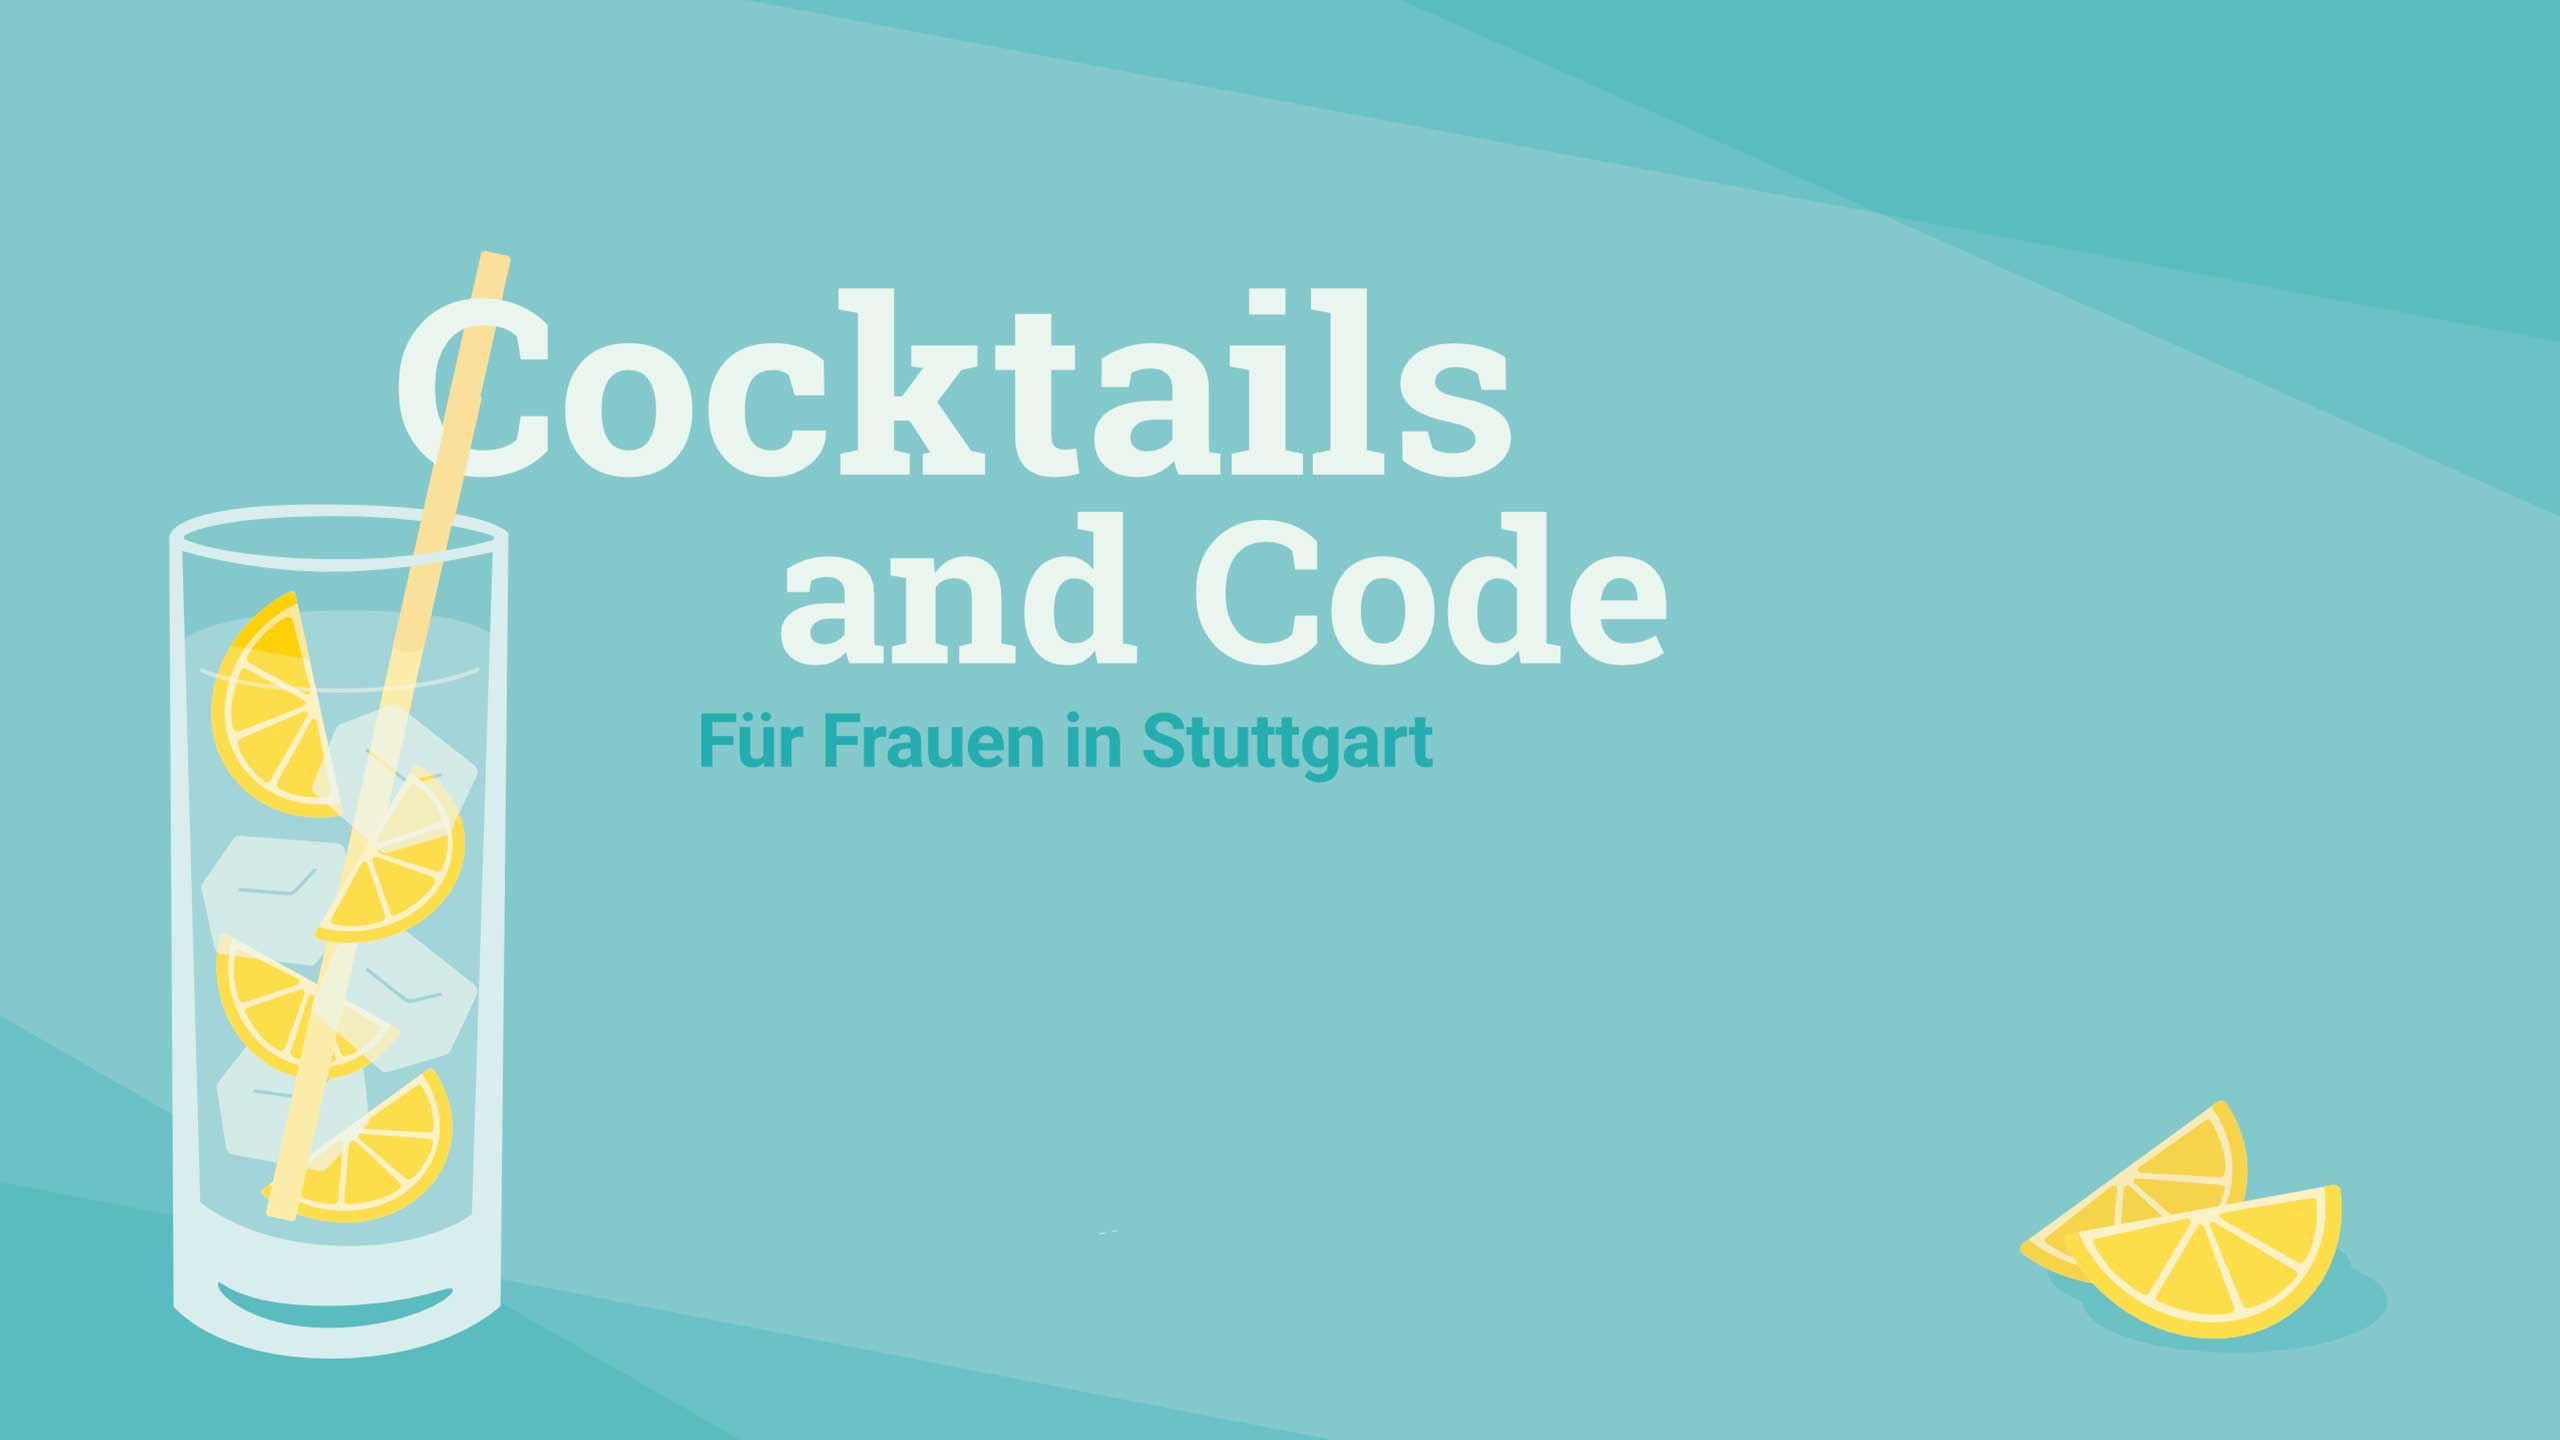 Cocktails & Code 2020 - Cocktails & Code für Frauen in der IT in Stuttgart / copy Ready to Code e.V.